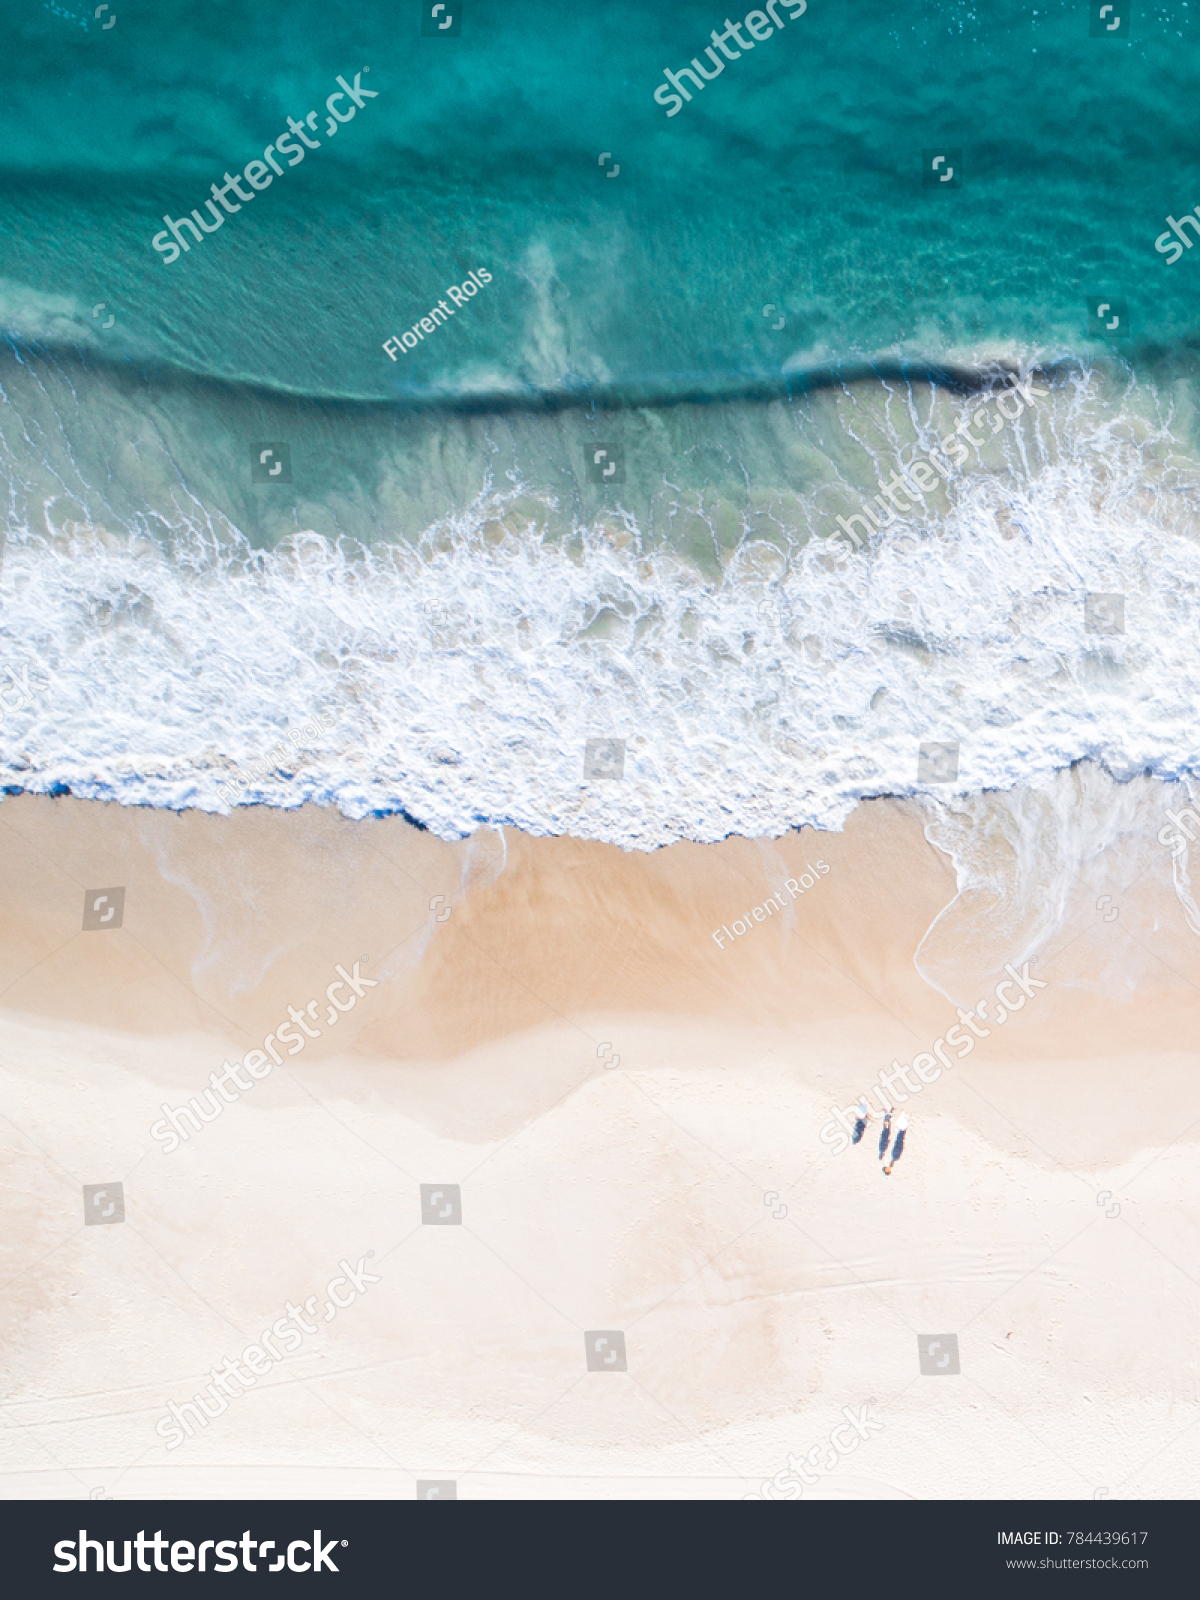 Beach holidays pictures Drone views of beach, waves, surf, swimmer, sea, ocean in Australia. Beautiful aerial of coastal images. #784439617